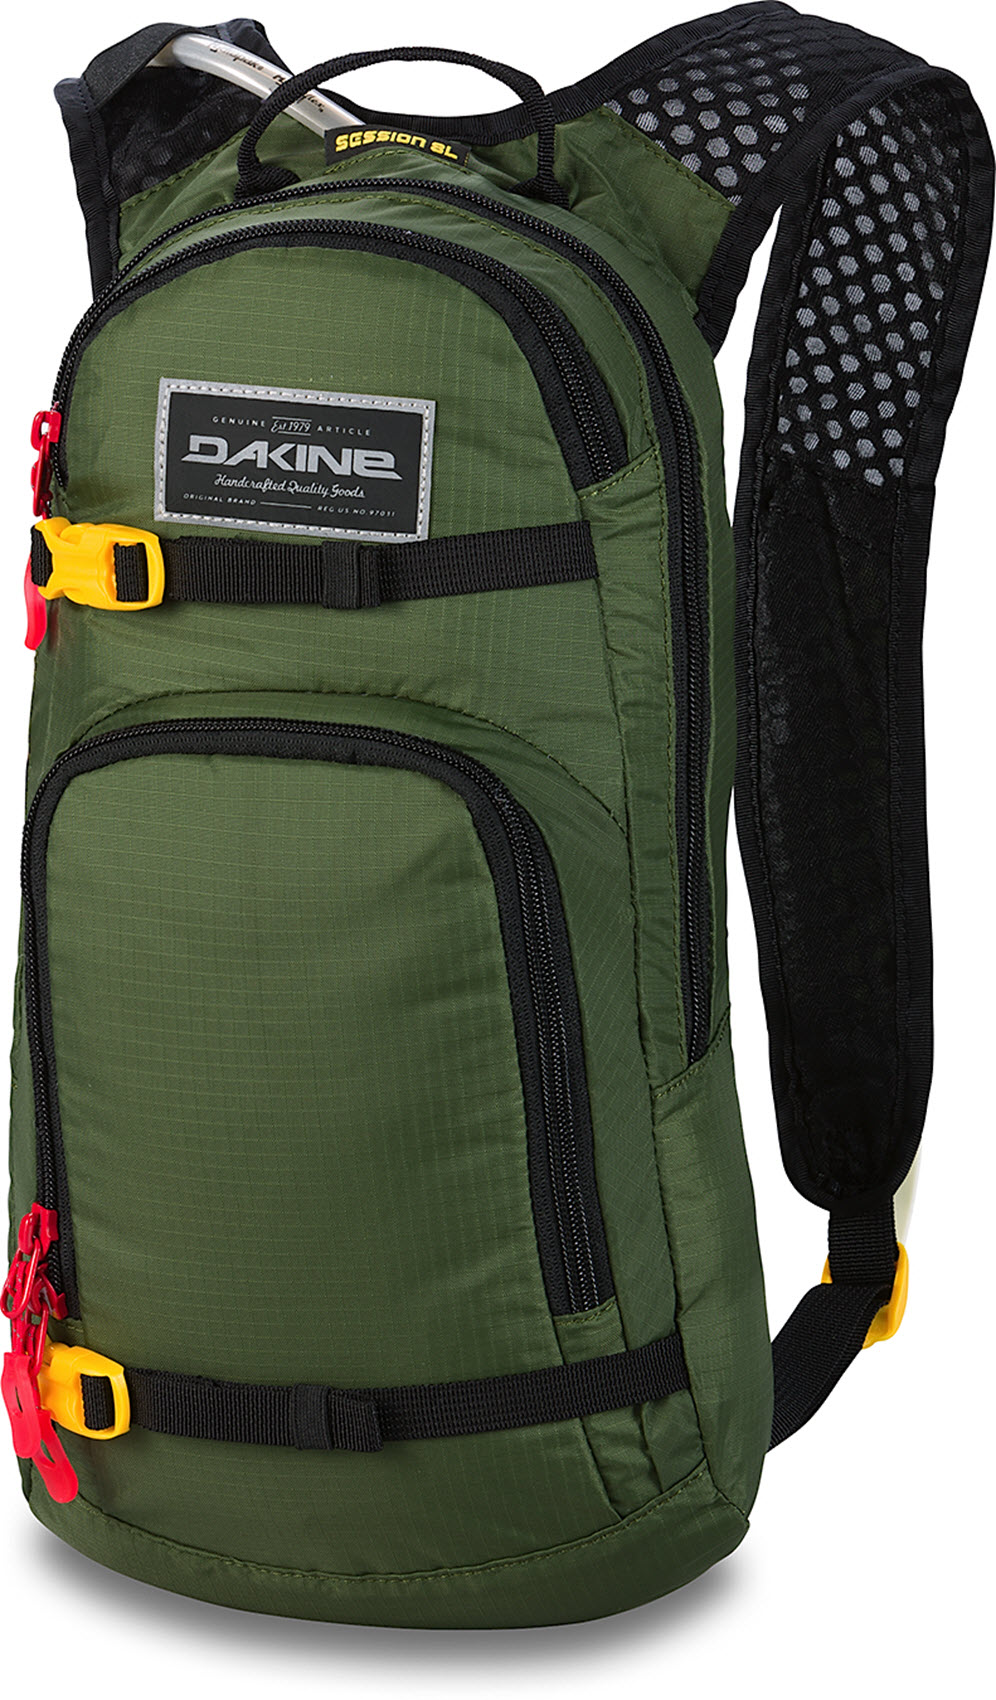 Dakine Bike Backpack - Session 8L - Hydration Reservoir, Mountain ...